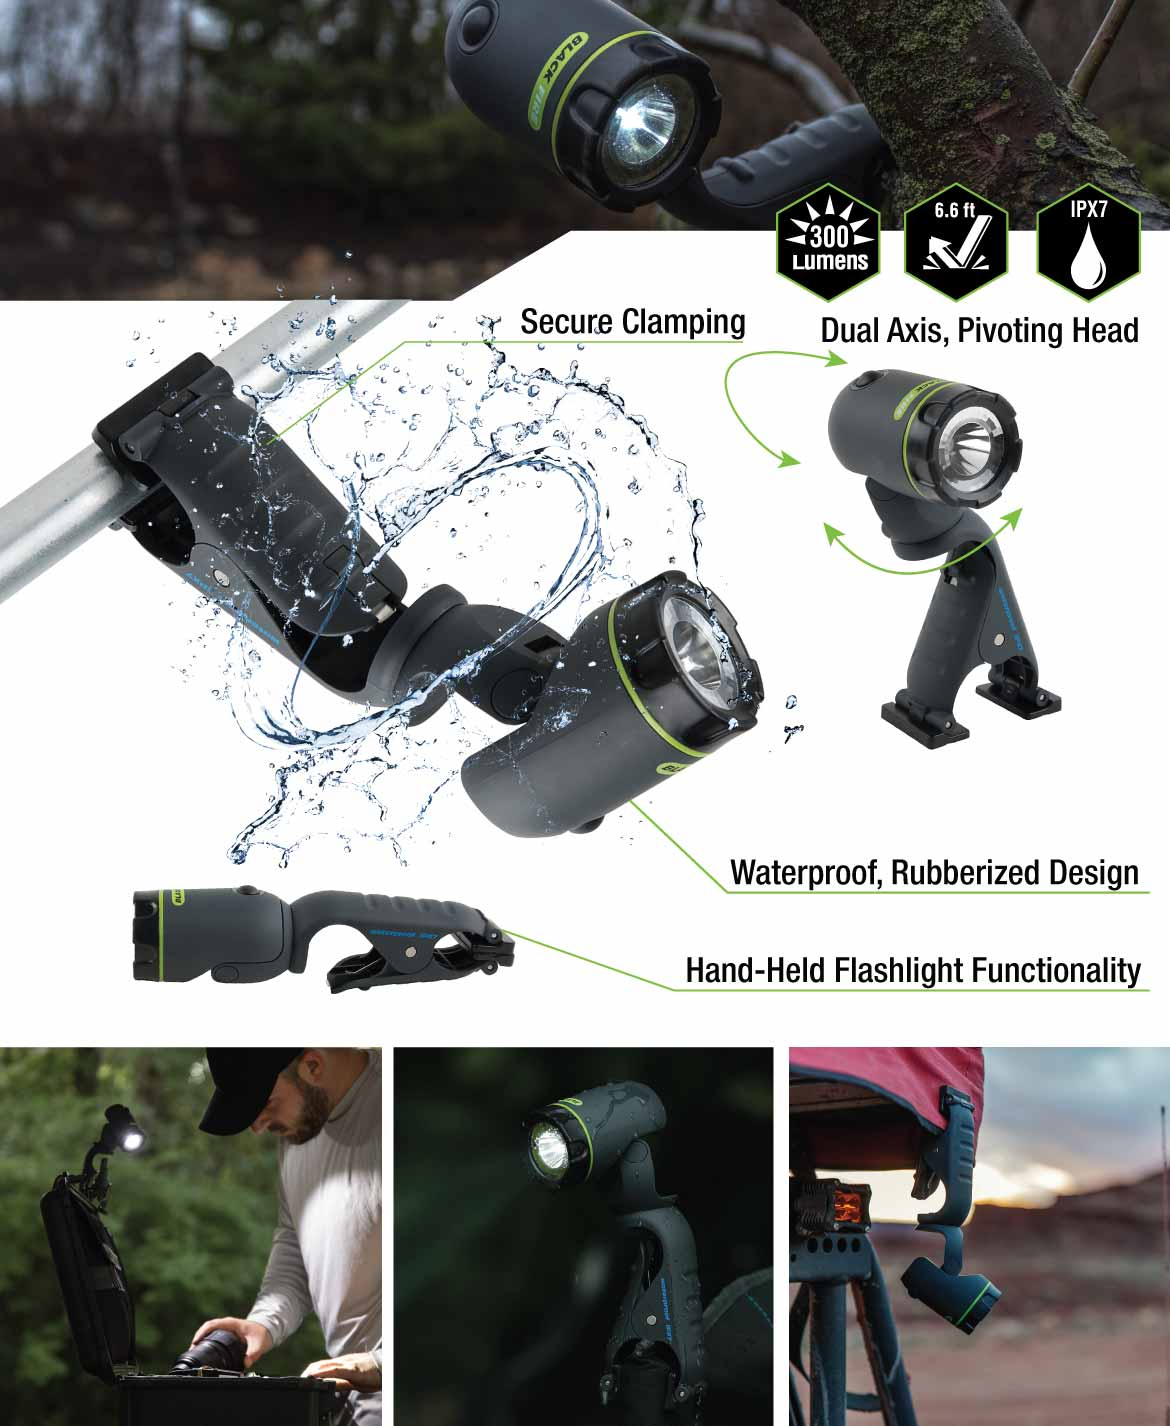 Extra features of the Blackfire Waterproof LED Clamplight